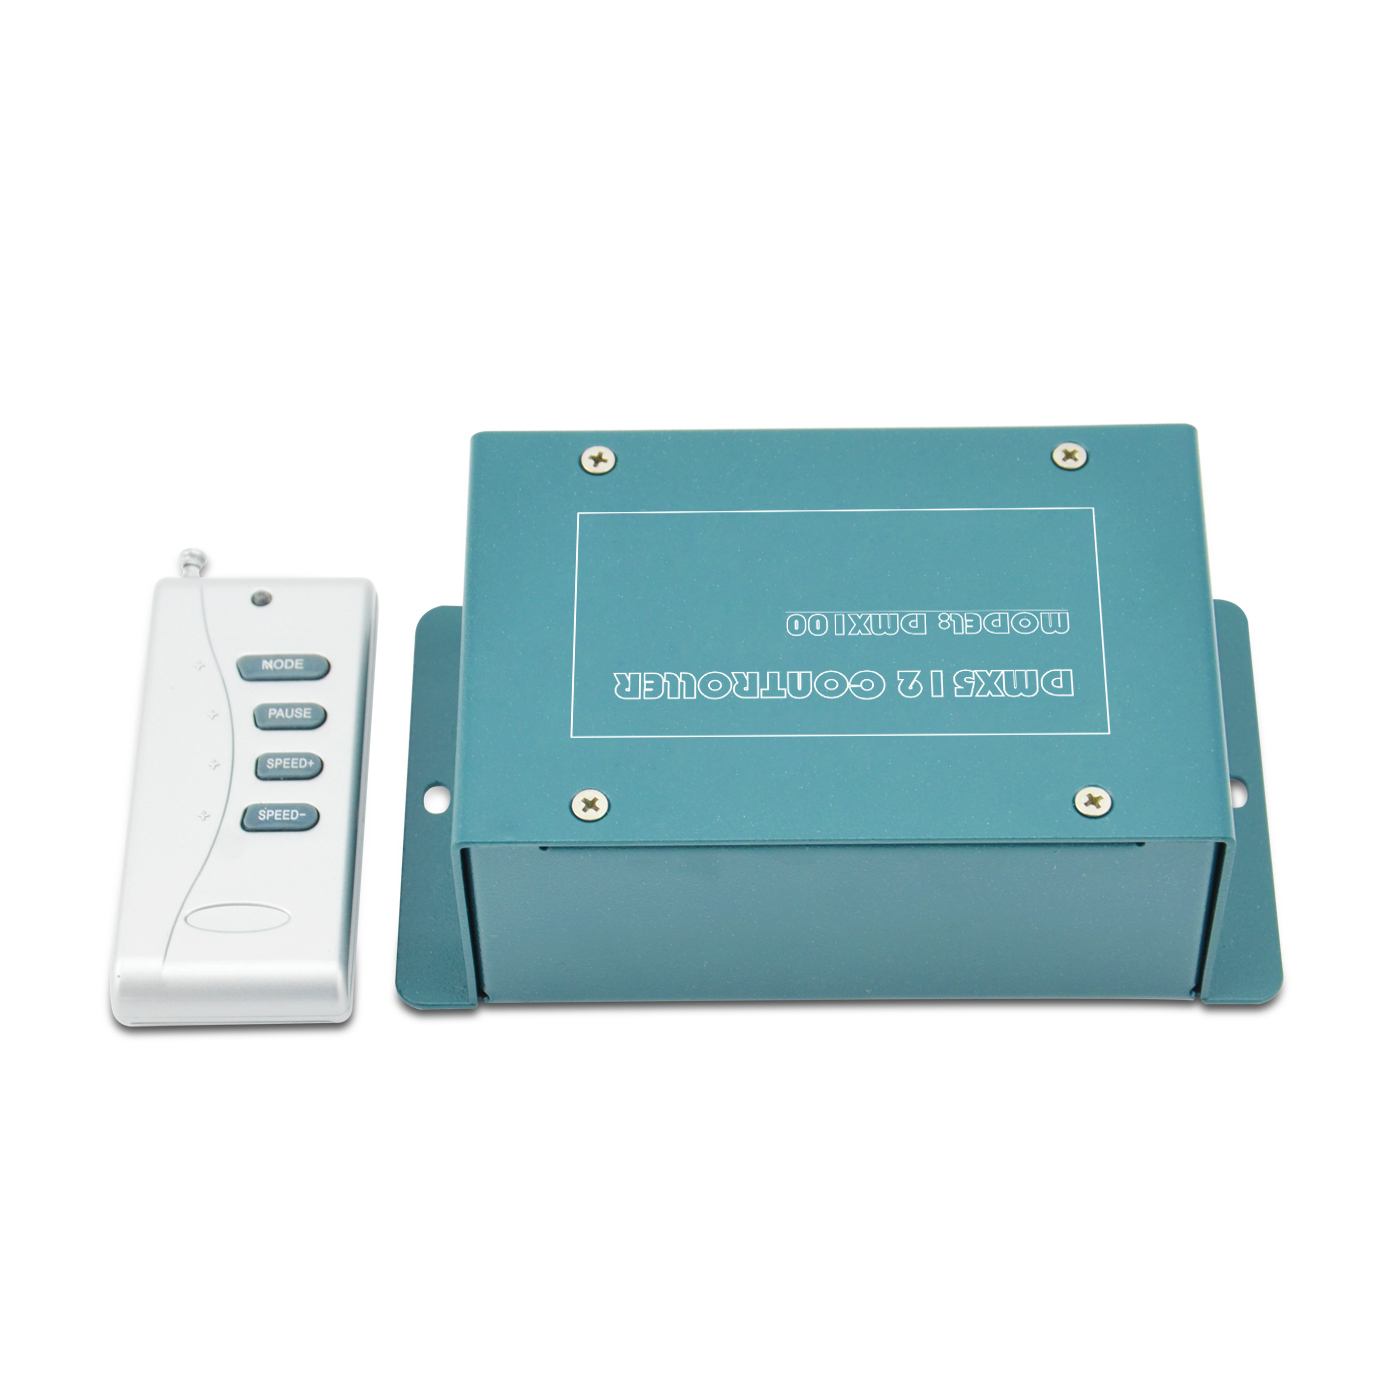 High reputation Led Area Light Dimming -